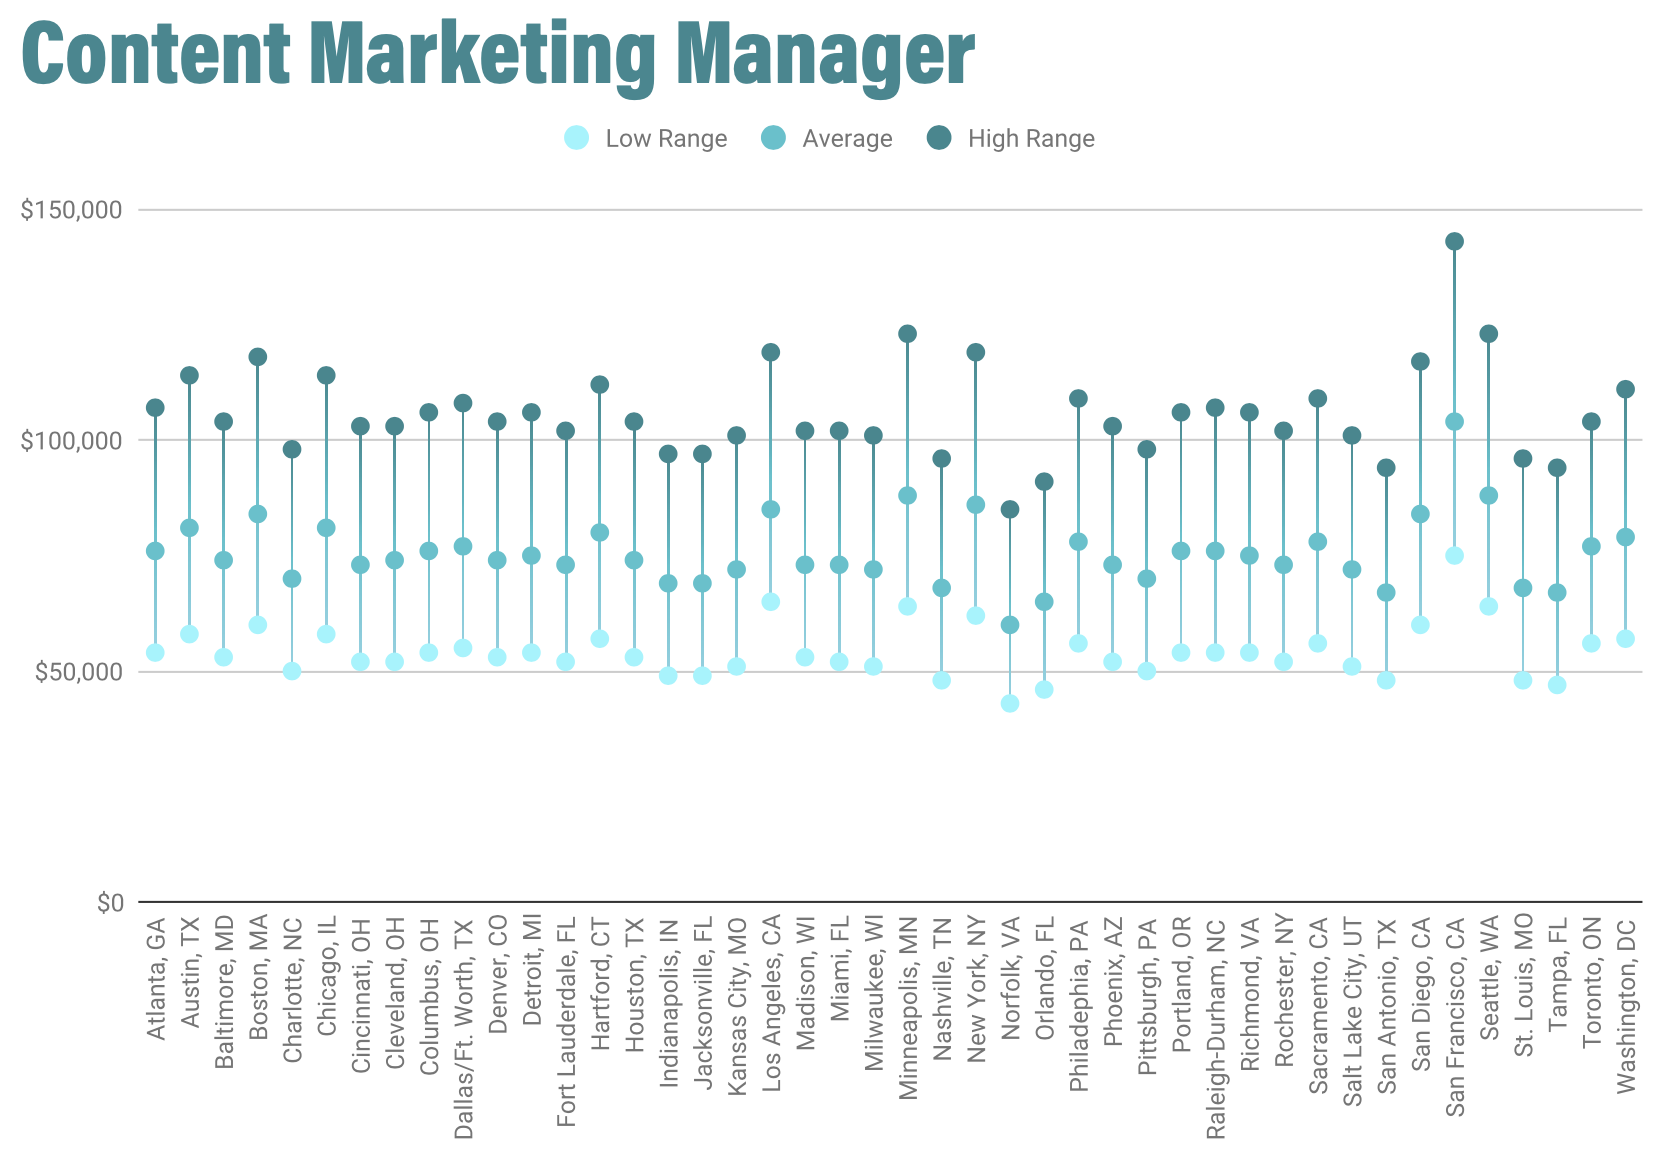 /uploads/2020/01/Content_Marketing_Manager_Salaries.png